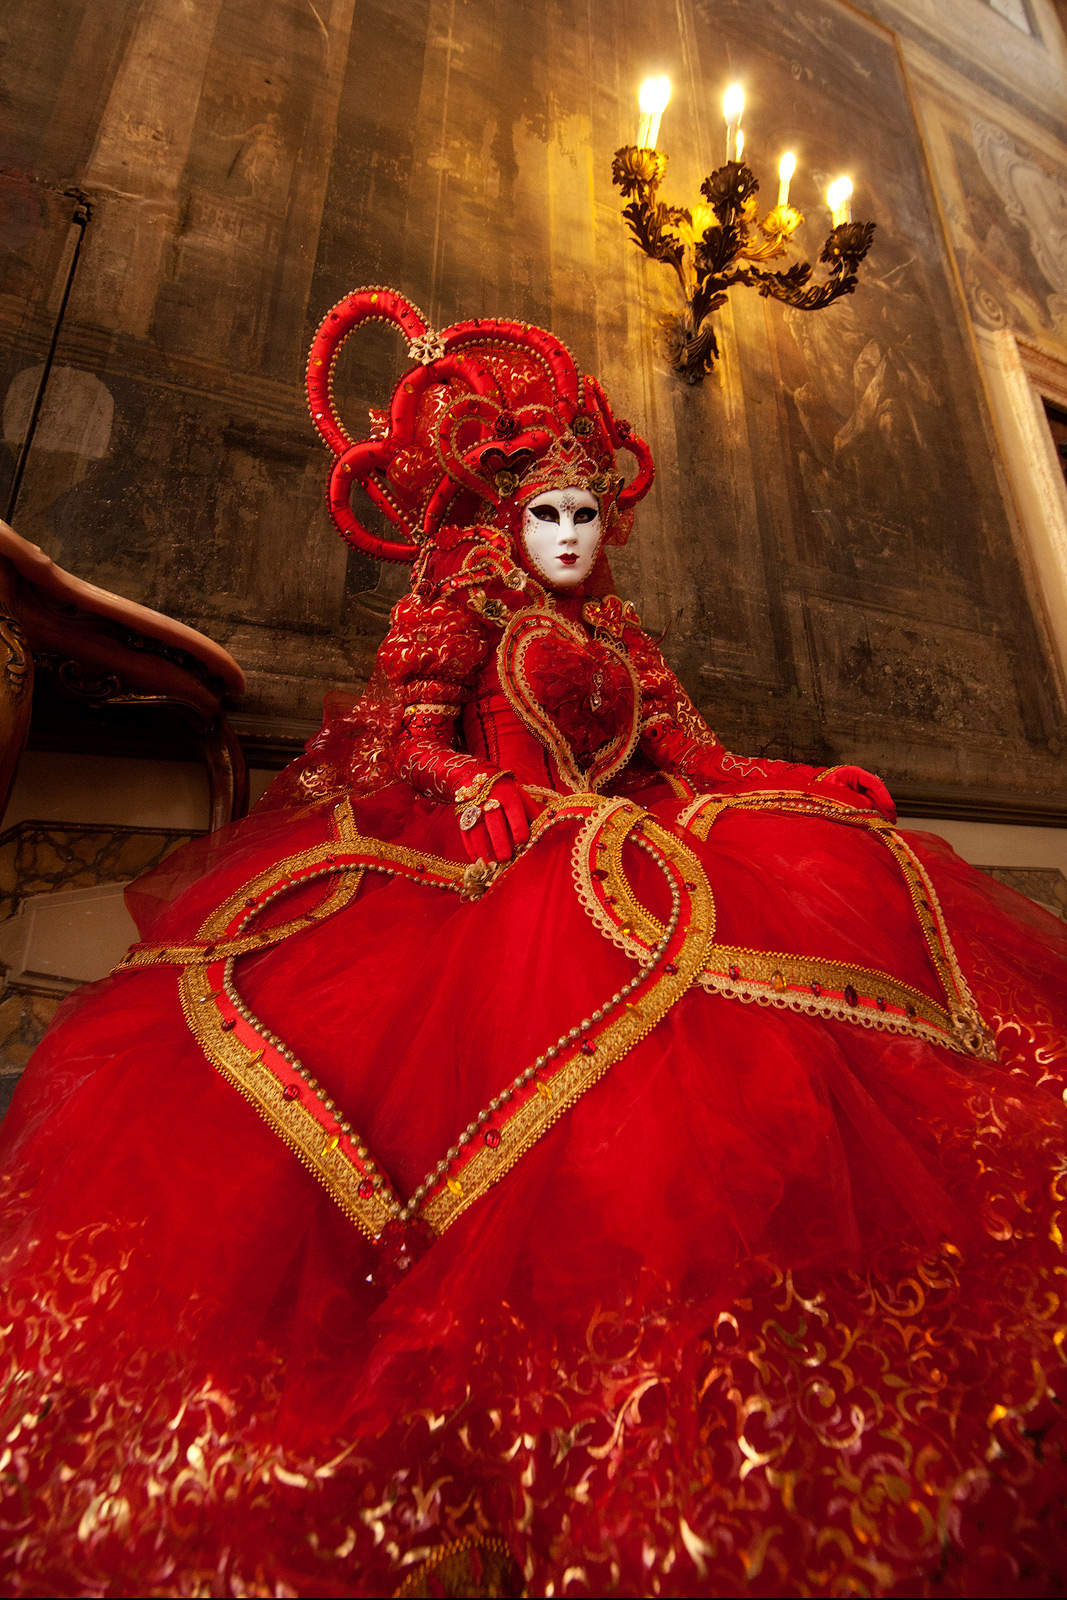 carnival, celebration, colorful, costume, europe, italy, mask, myriam, myriam melhem, palace, party, red, venice, vertical, photo